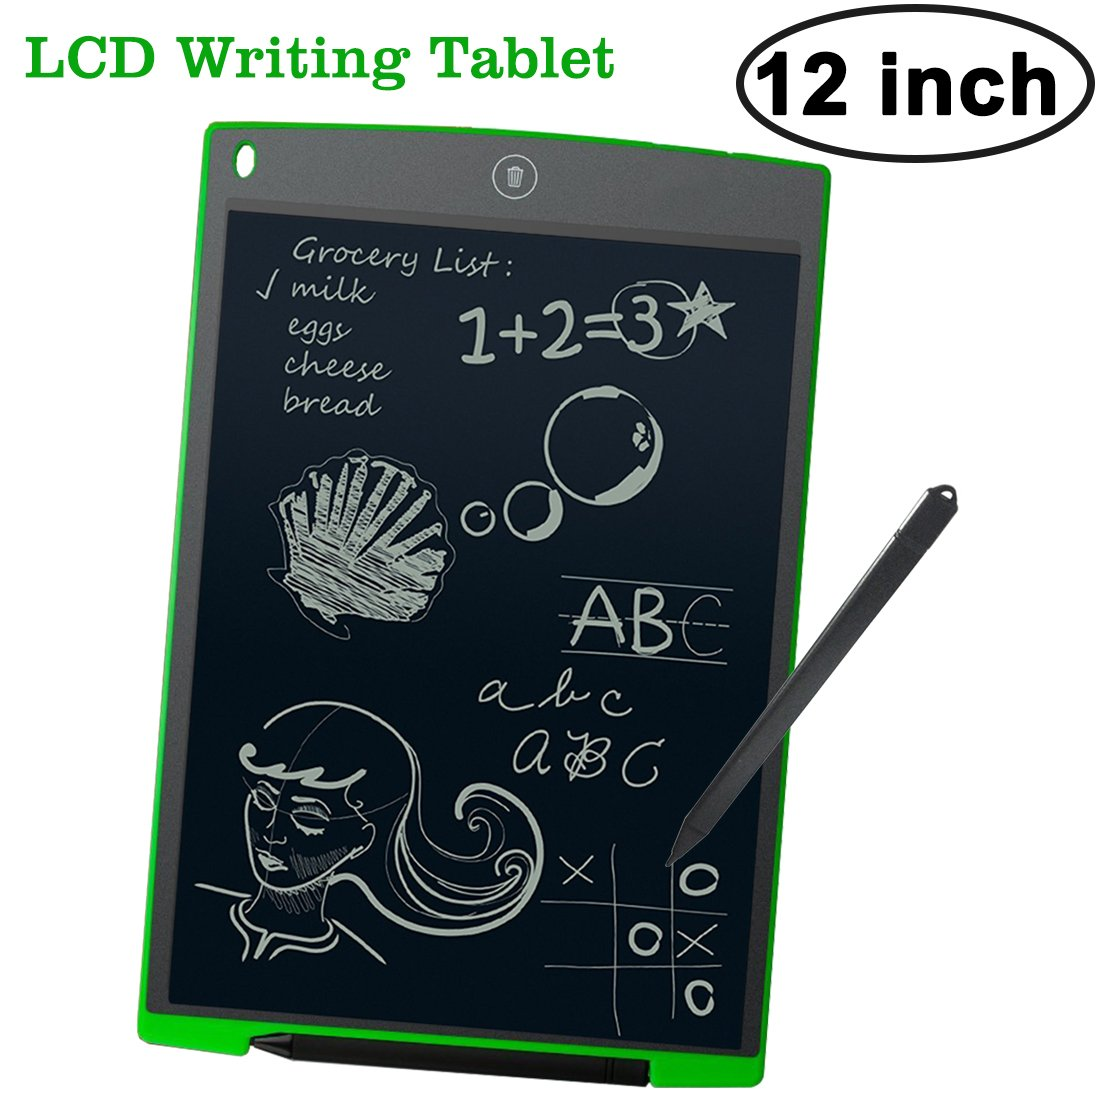 12 Inch LCD Writing Tablet for Kids Toddlers Draw Board with Stylus Erase Digital Large Pads Magnet Electronic Graphics Office Memo Children Arts Learing Doodle Toys for Boys Girls Adults by Symfury